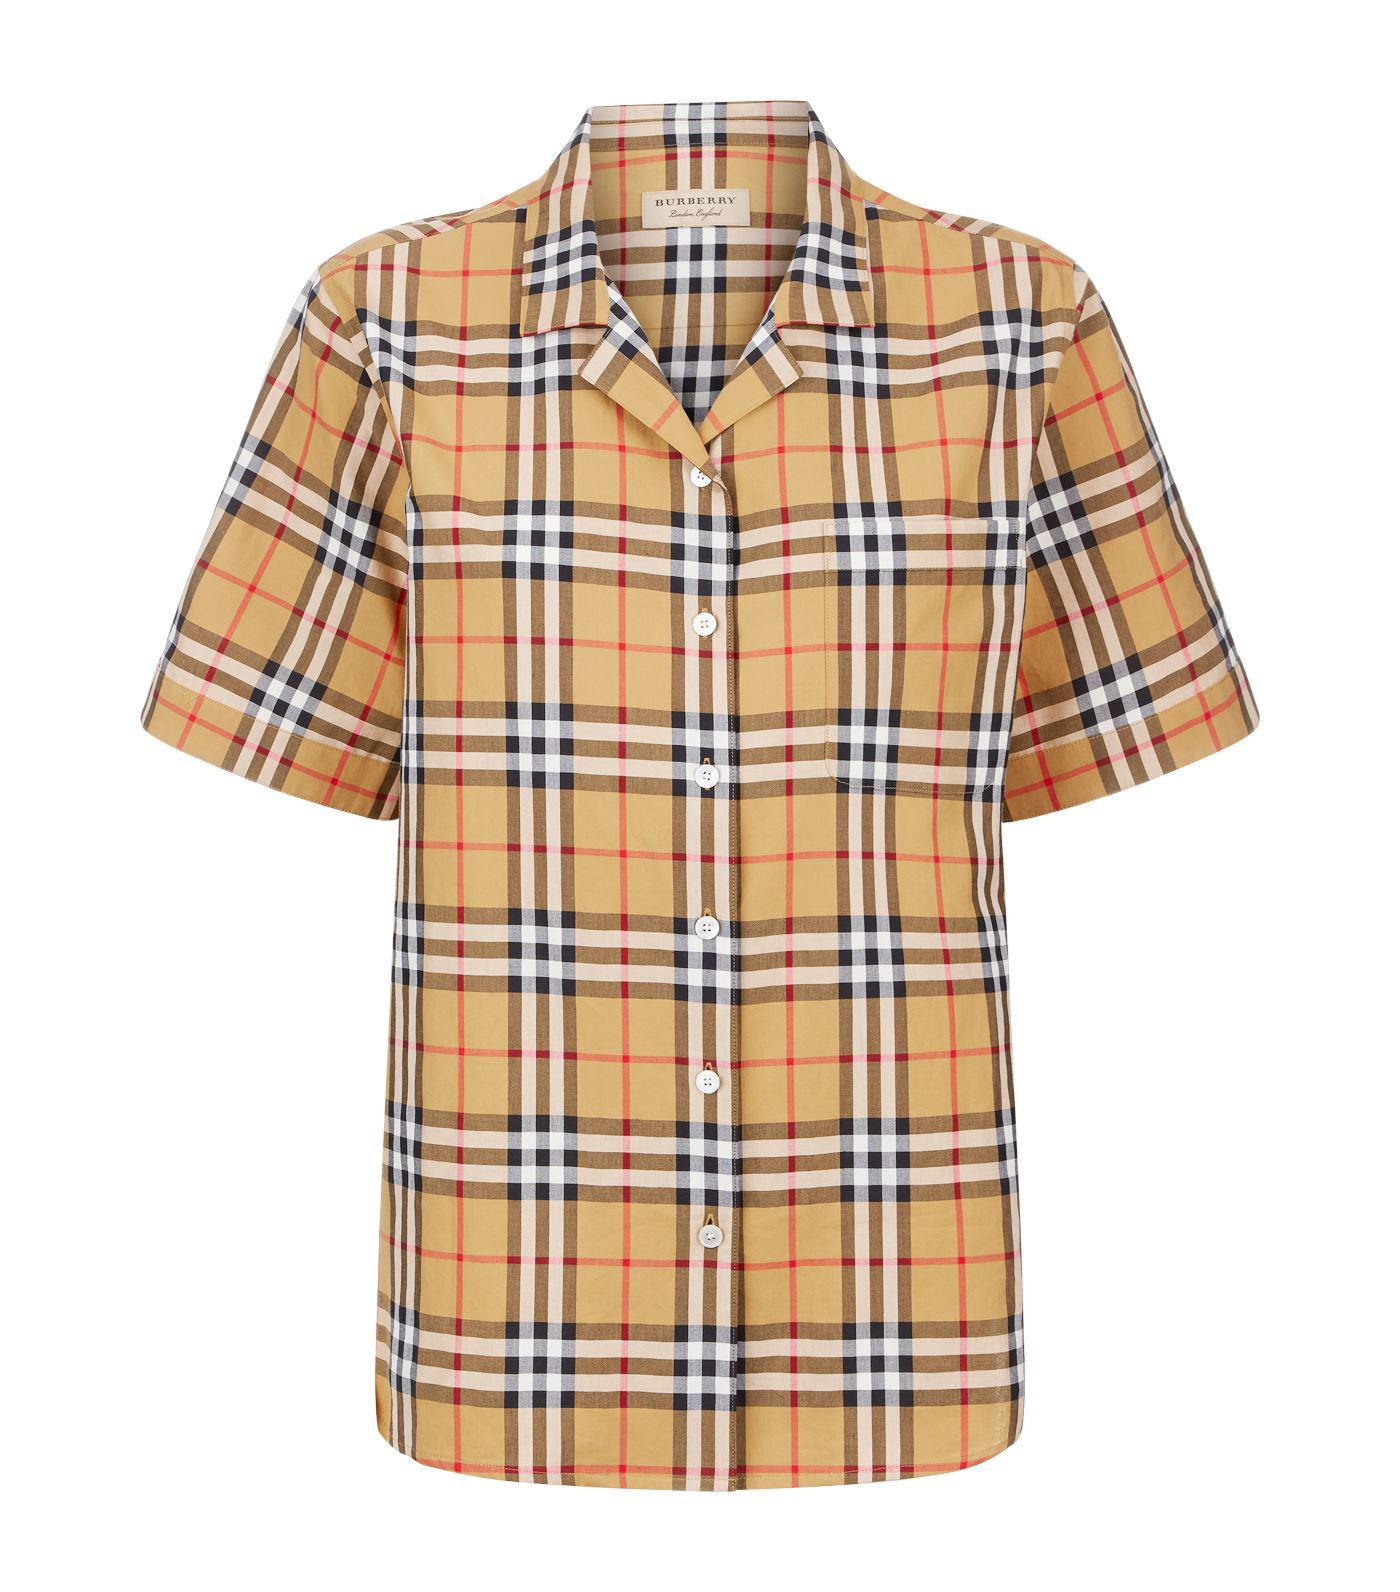 For Sale Cheap Price From China heritage check shirt - Yellow & Orange Burberry Get The Latest Fashion Latest Collections Online Sale Finishline izNHl89vGv